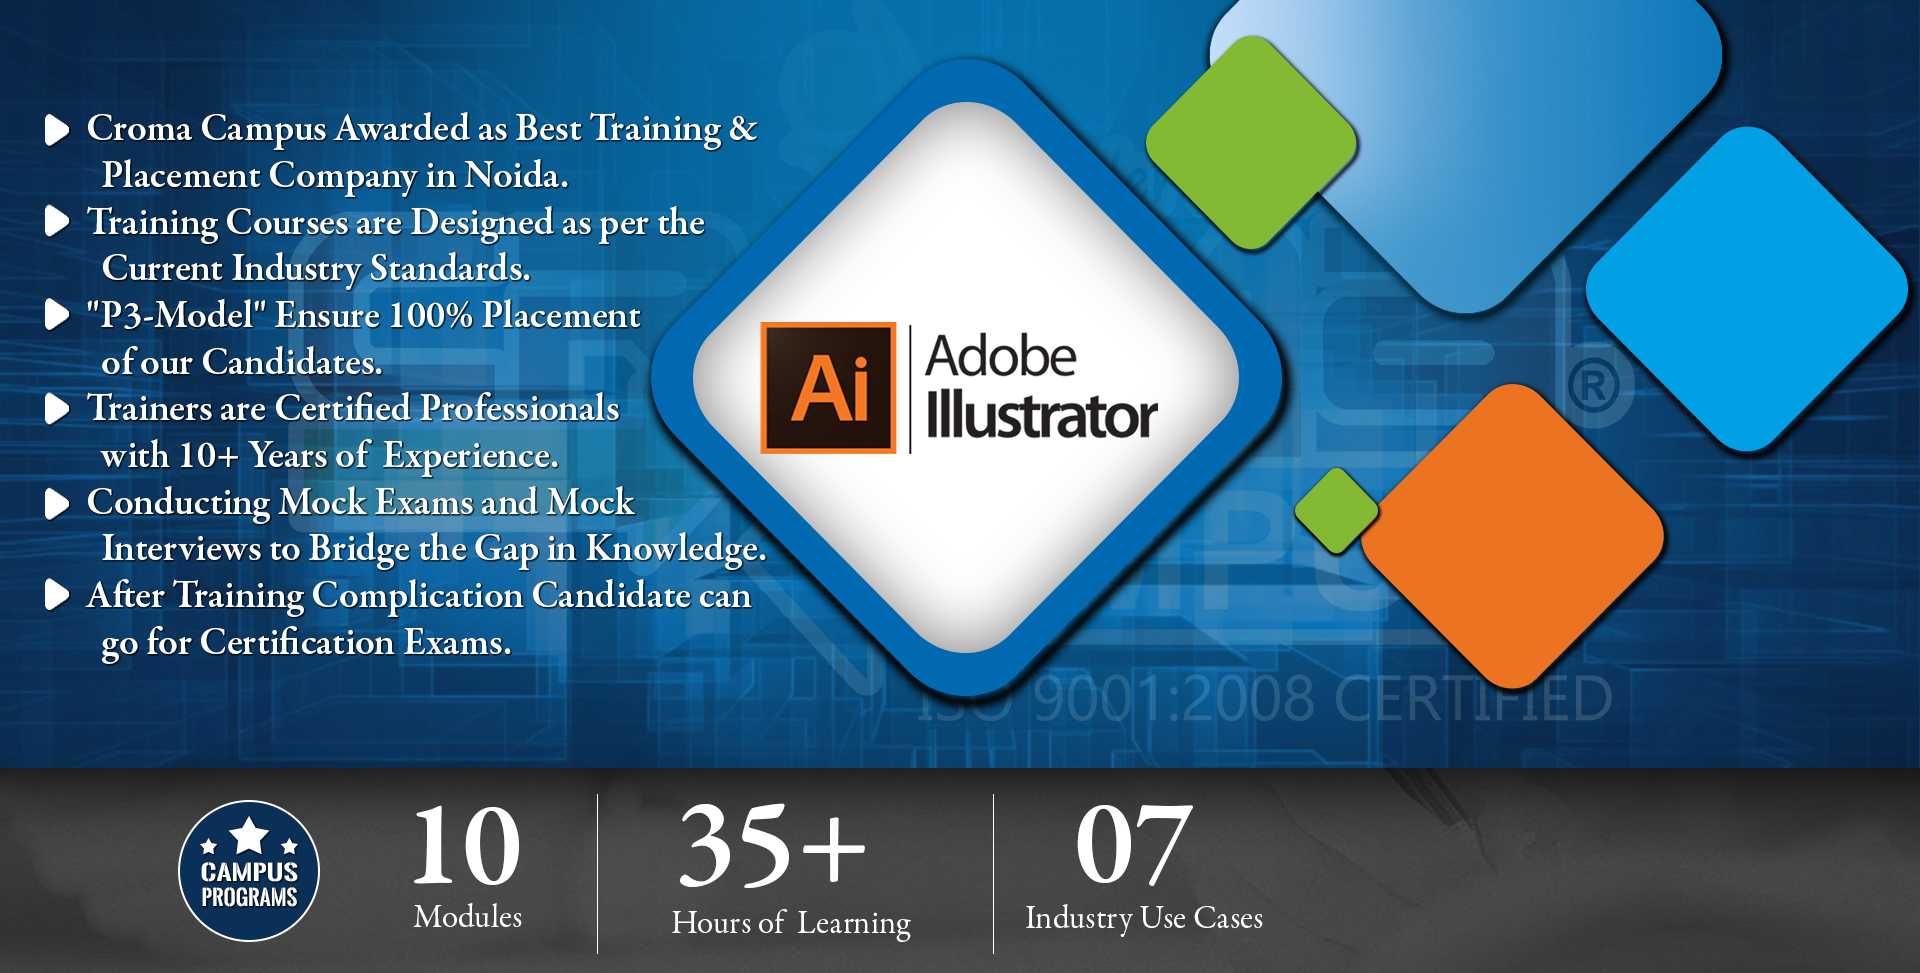 Adobe Illustrator Training in Delhi